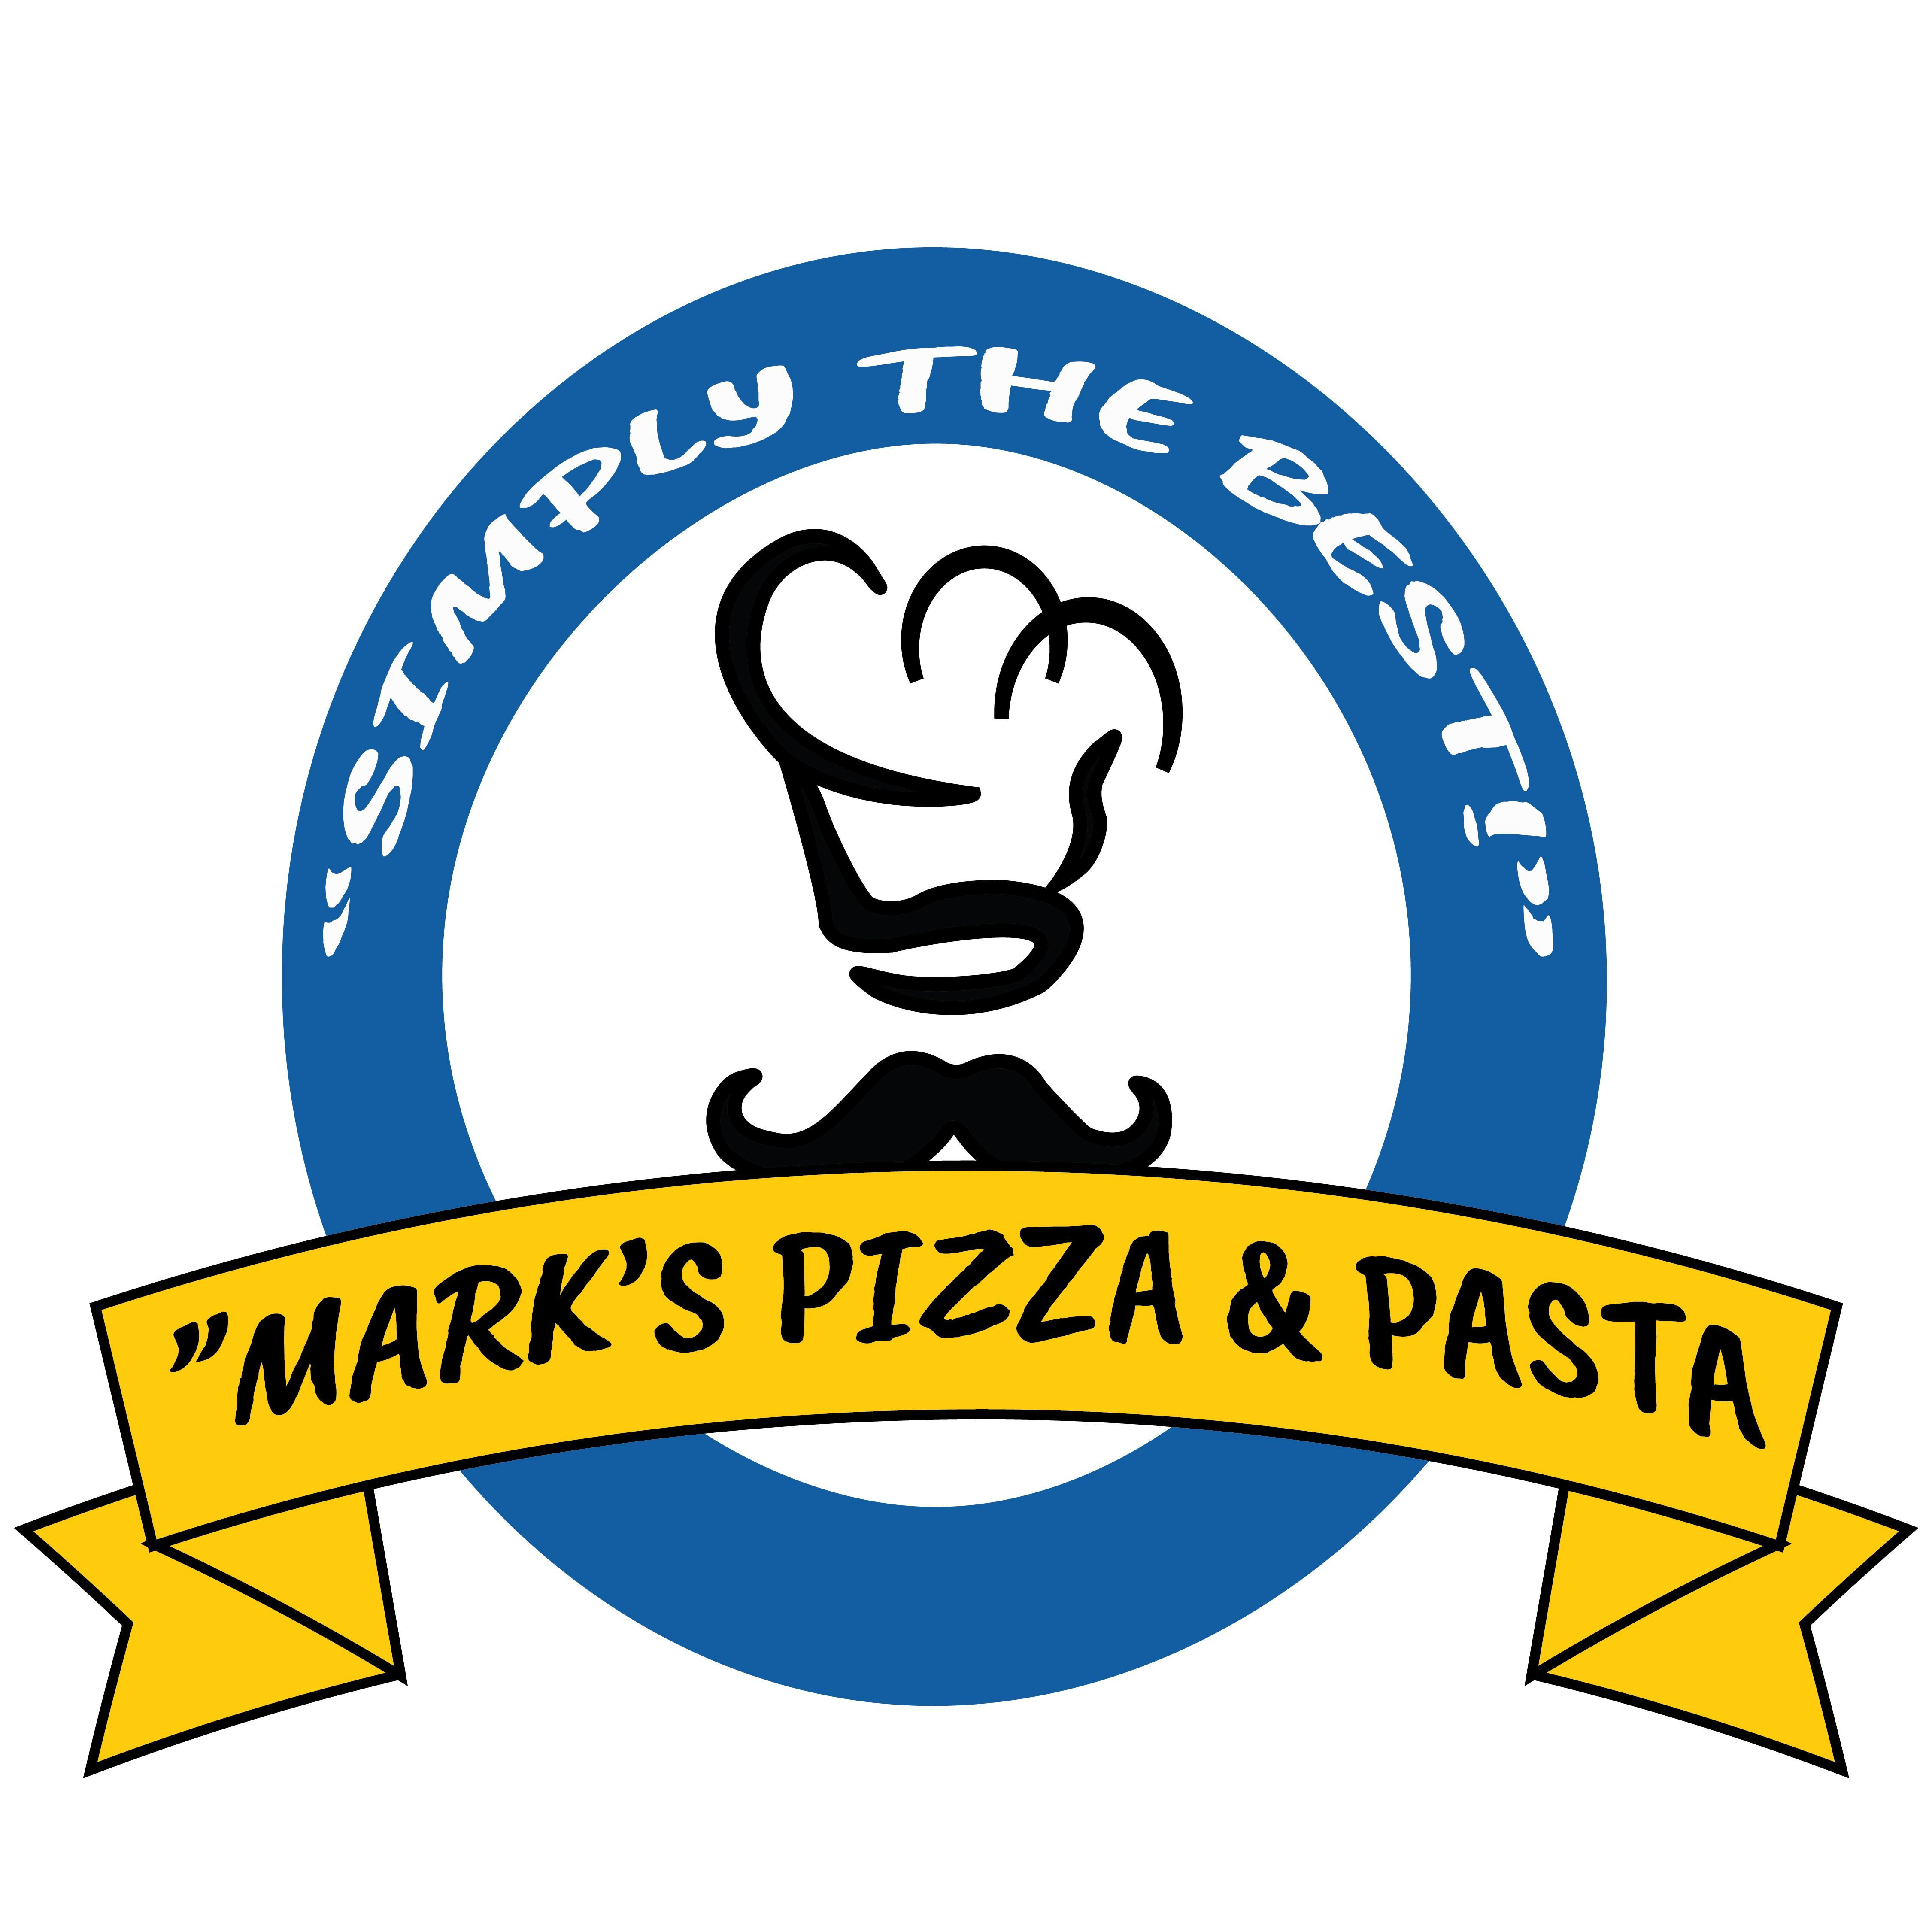 Mark 's pizza and pasta